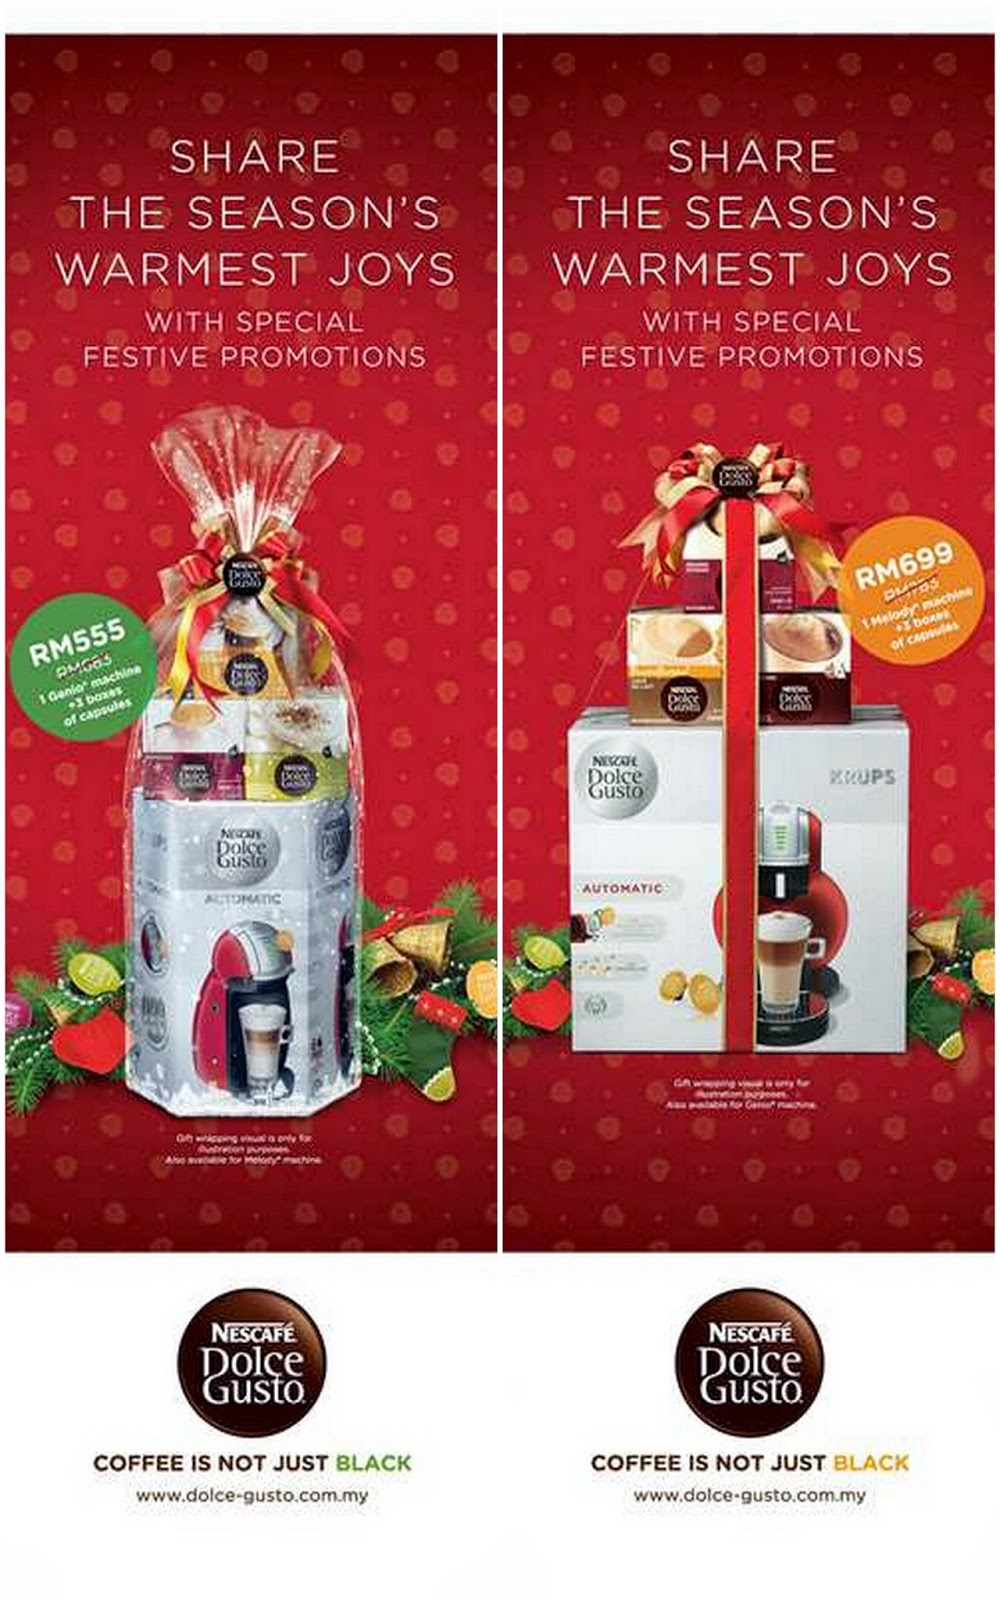 nescafe dolce gusto christmas celebration promotion. Black Bedroom Furniture Sets. Home Design Ideas